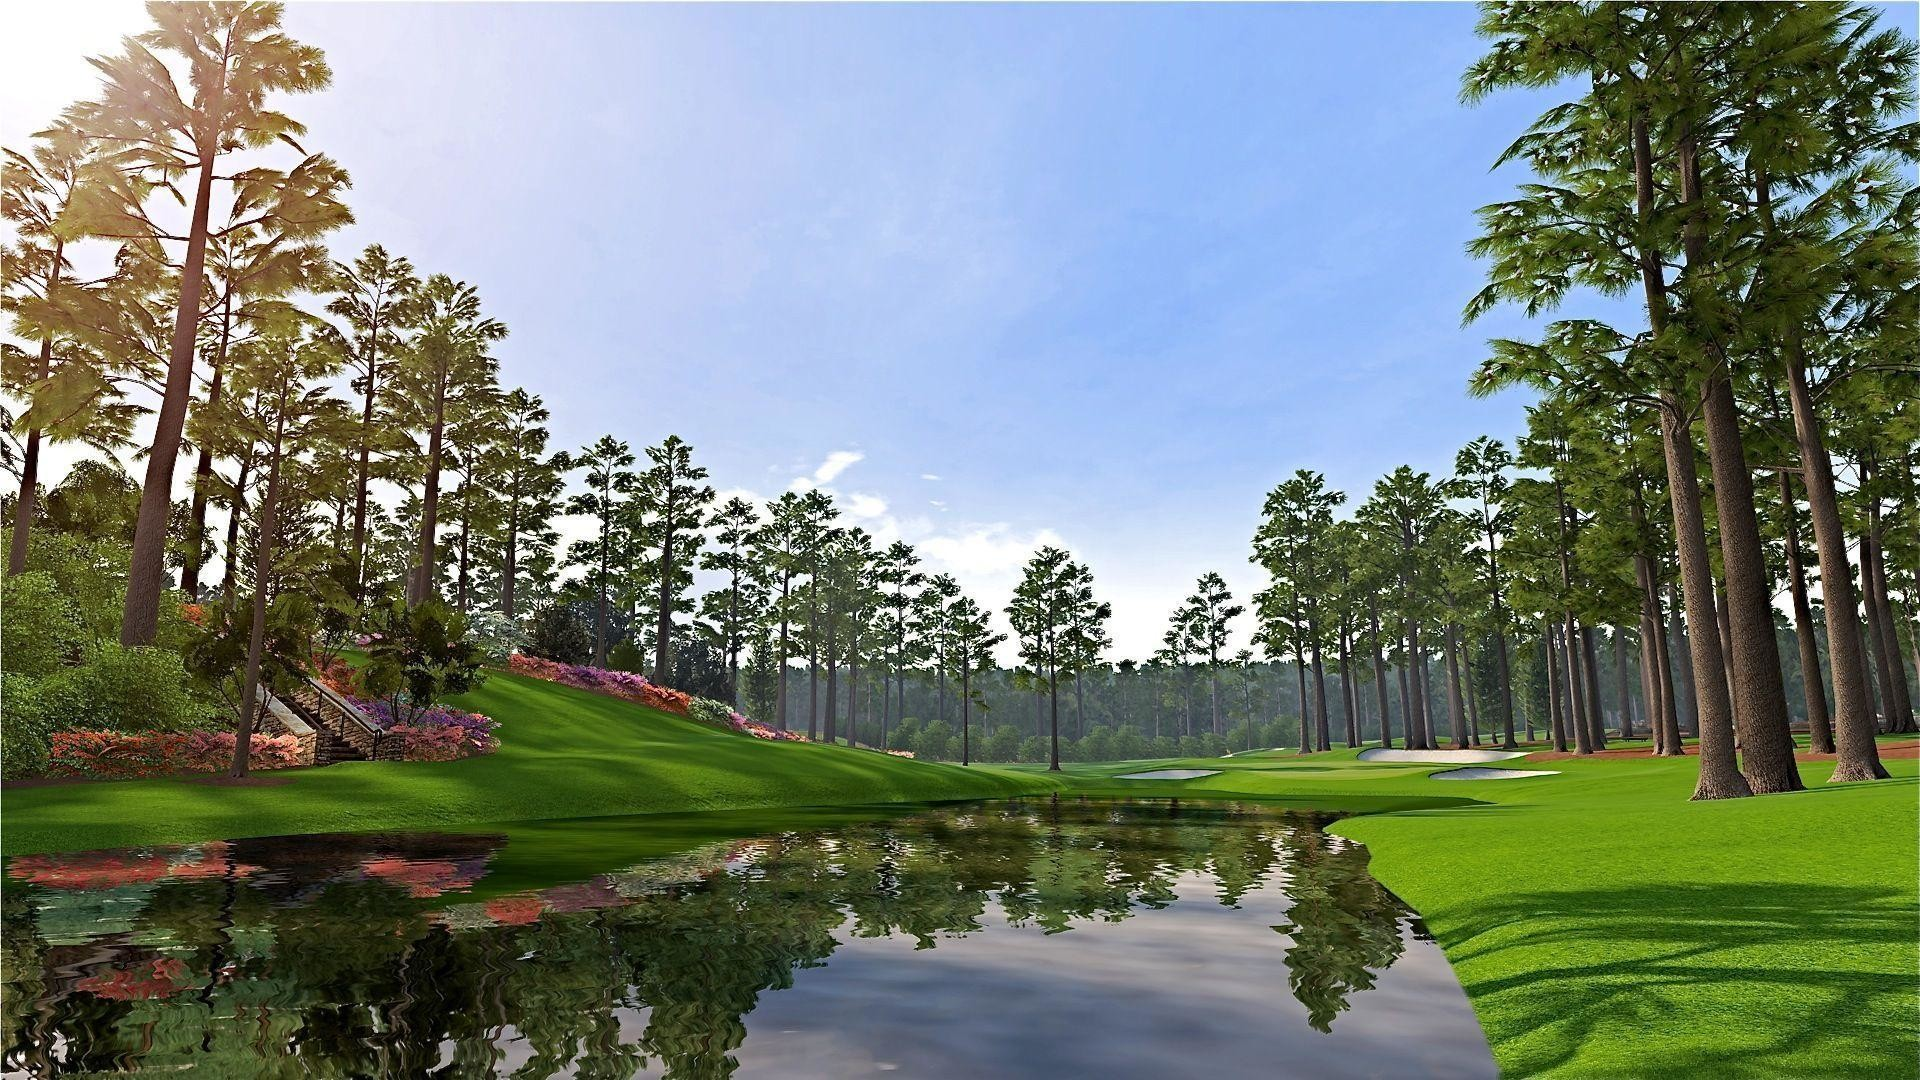 1920x1080 The Augusta National Golf Course Wallpapers HD Masters 2013